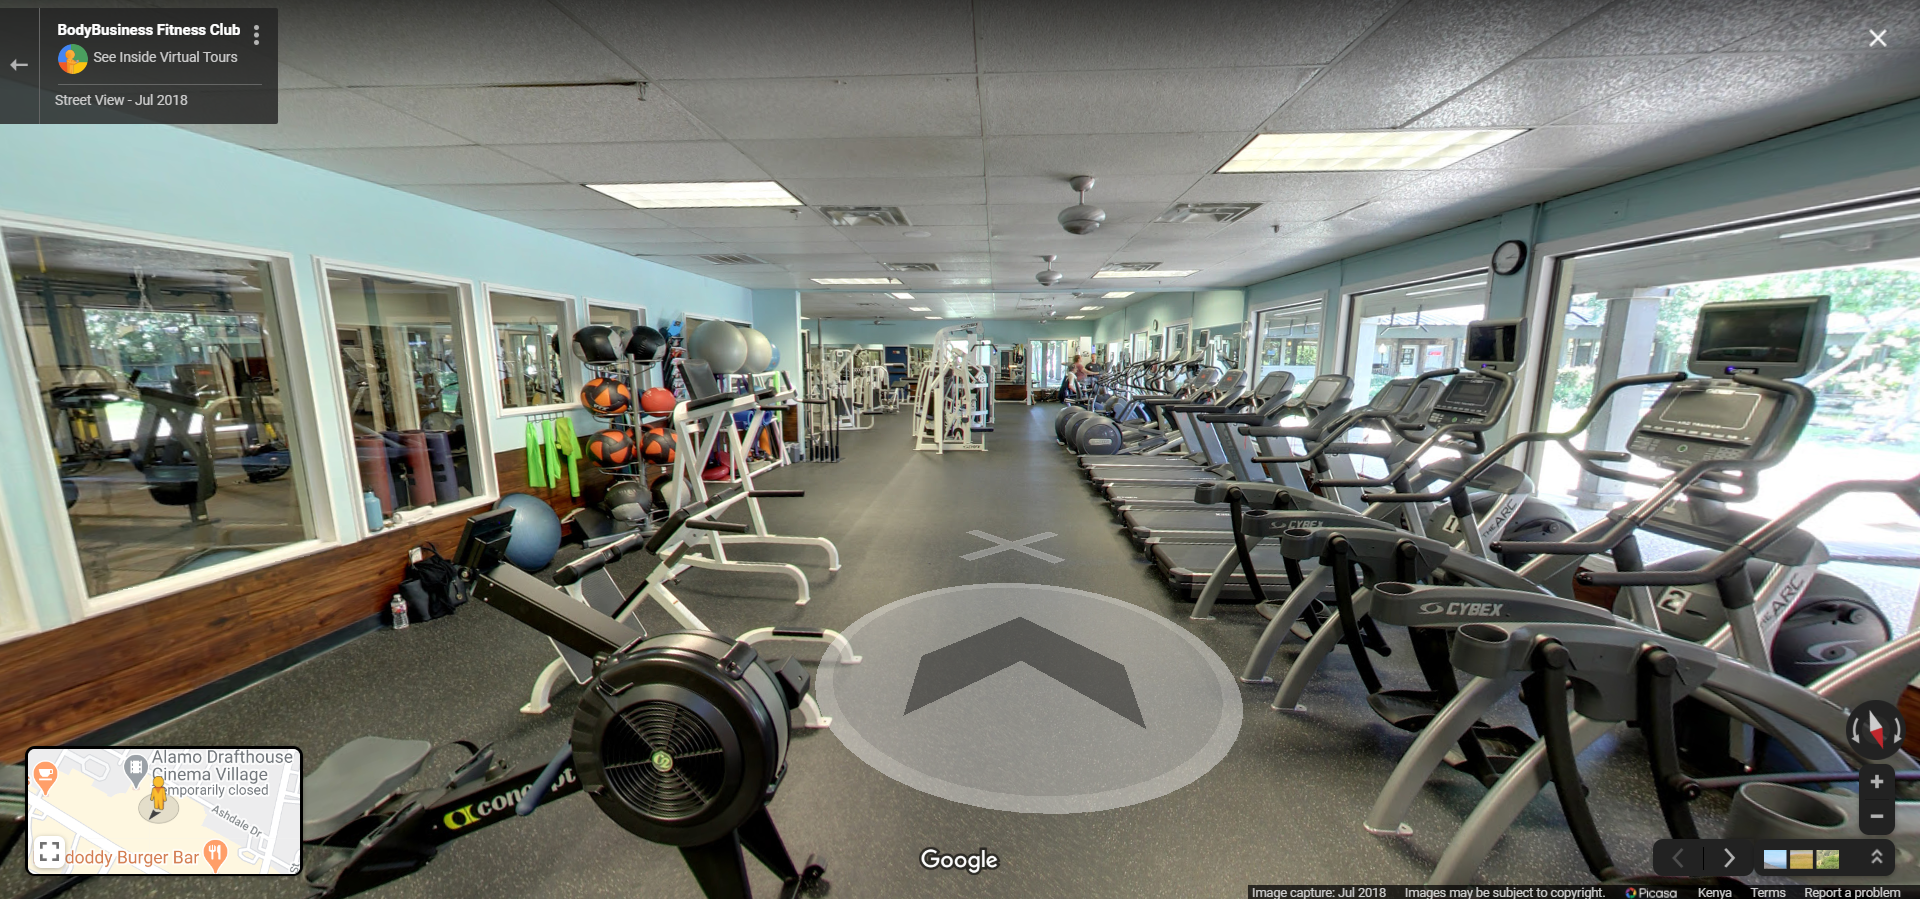 BodyBusiness Fitness Club - Austin